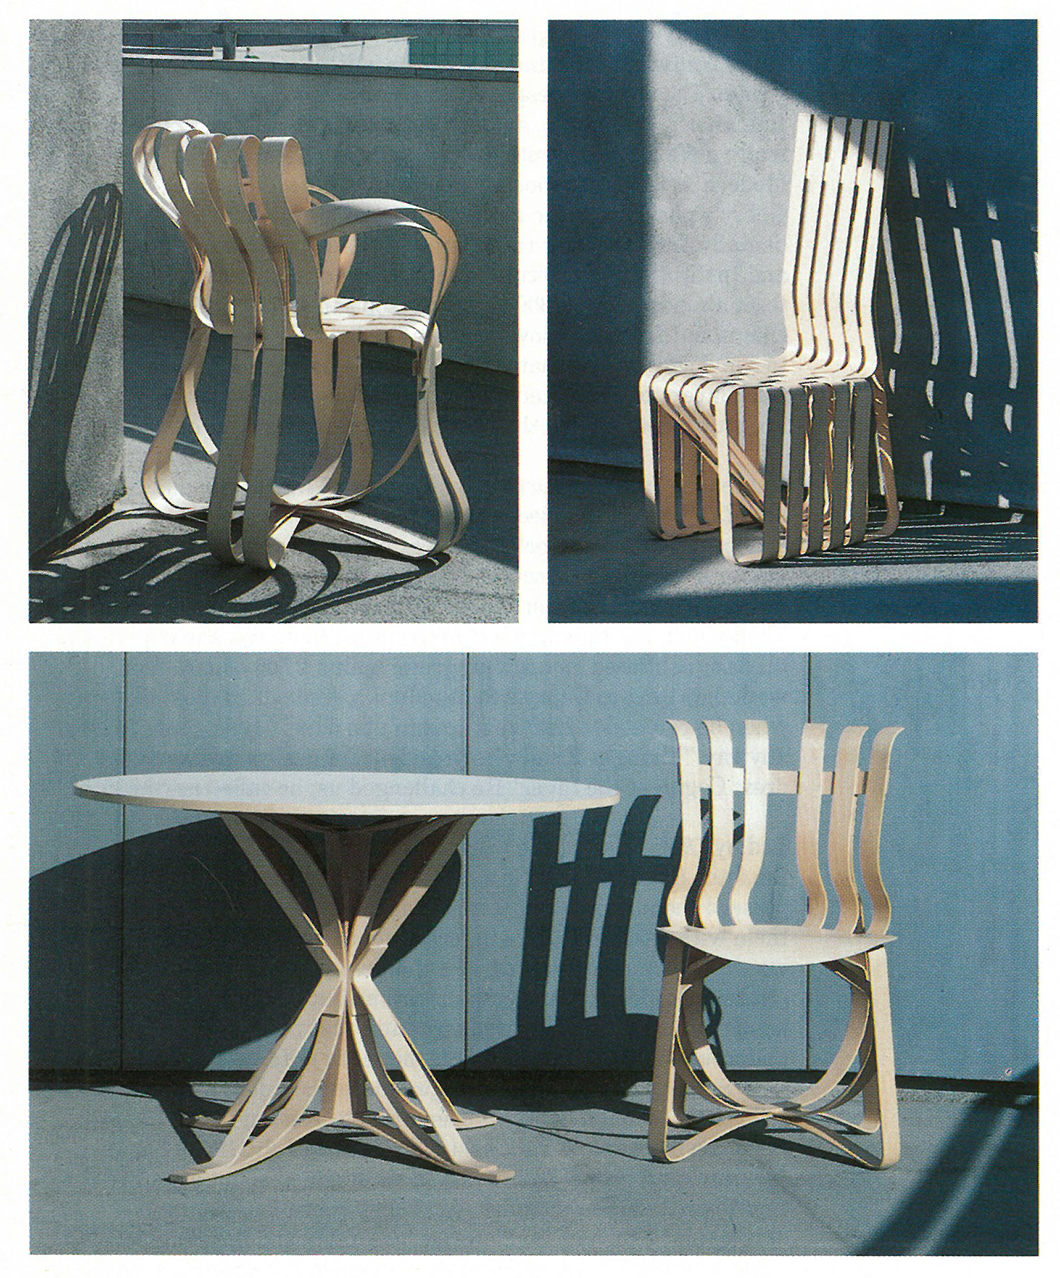 The Bentwood Collection by Frank Gehry, 1992 | In Conversation with Paul Goldberger | PC: Knoll Archive | Knoll Inspiration